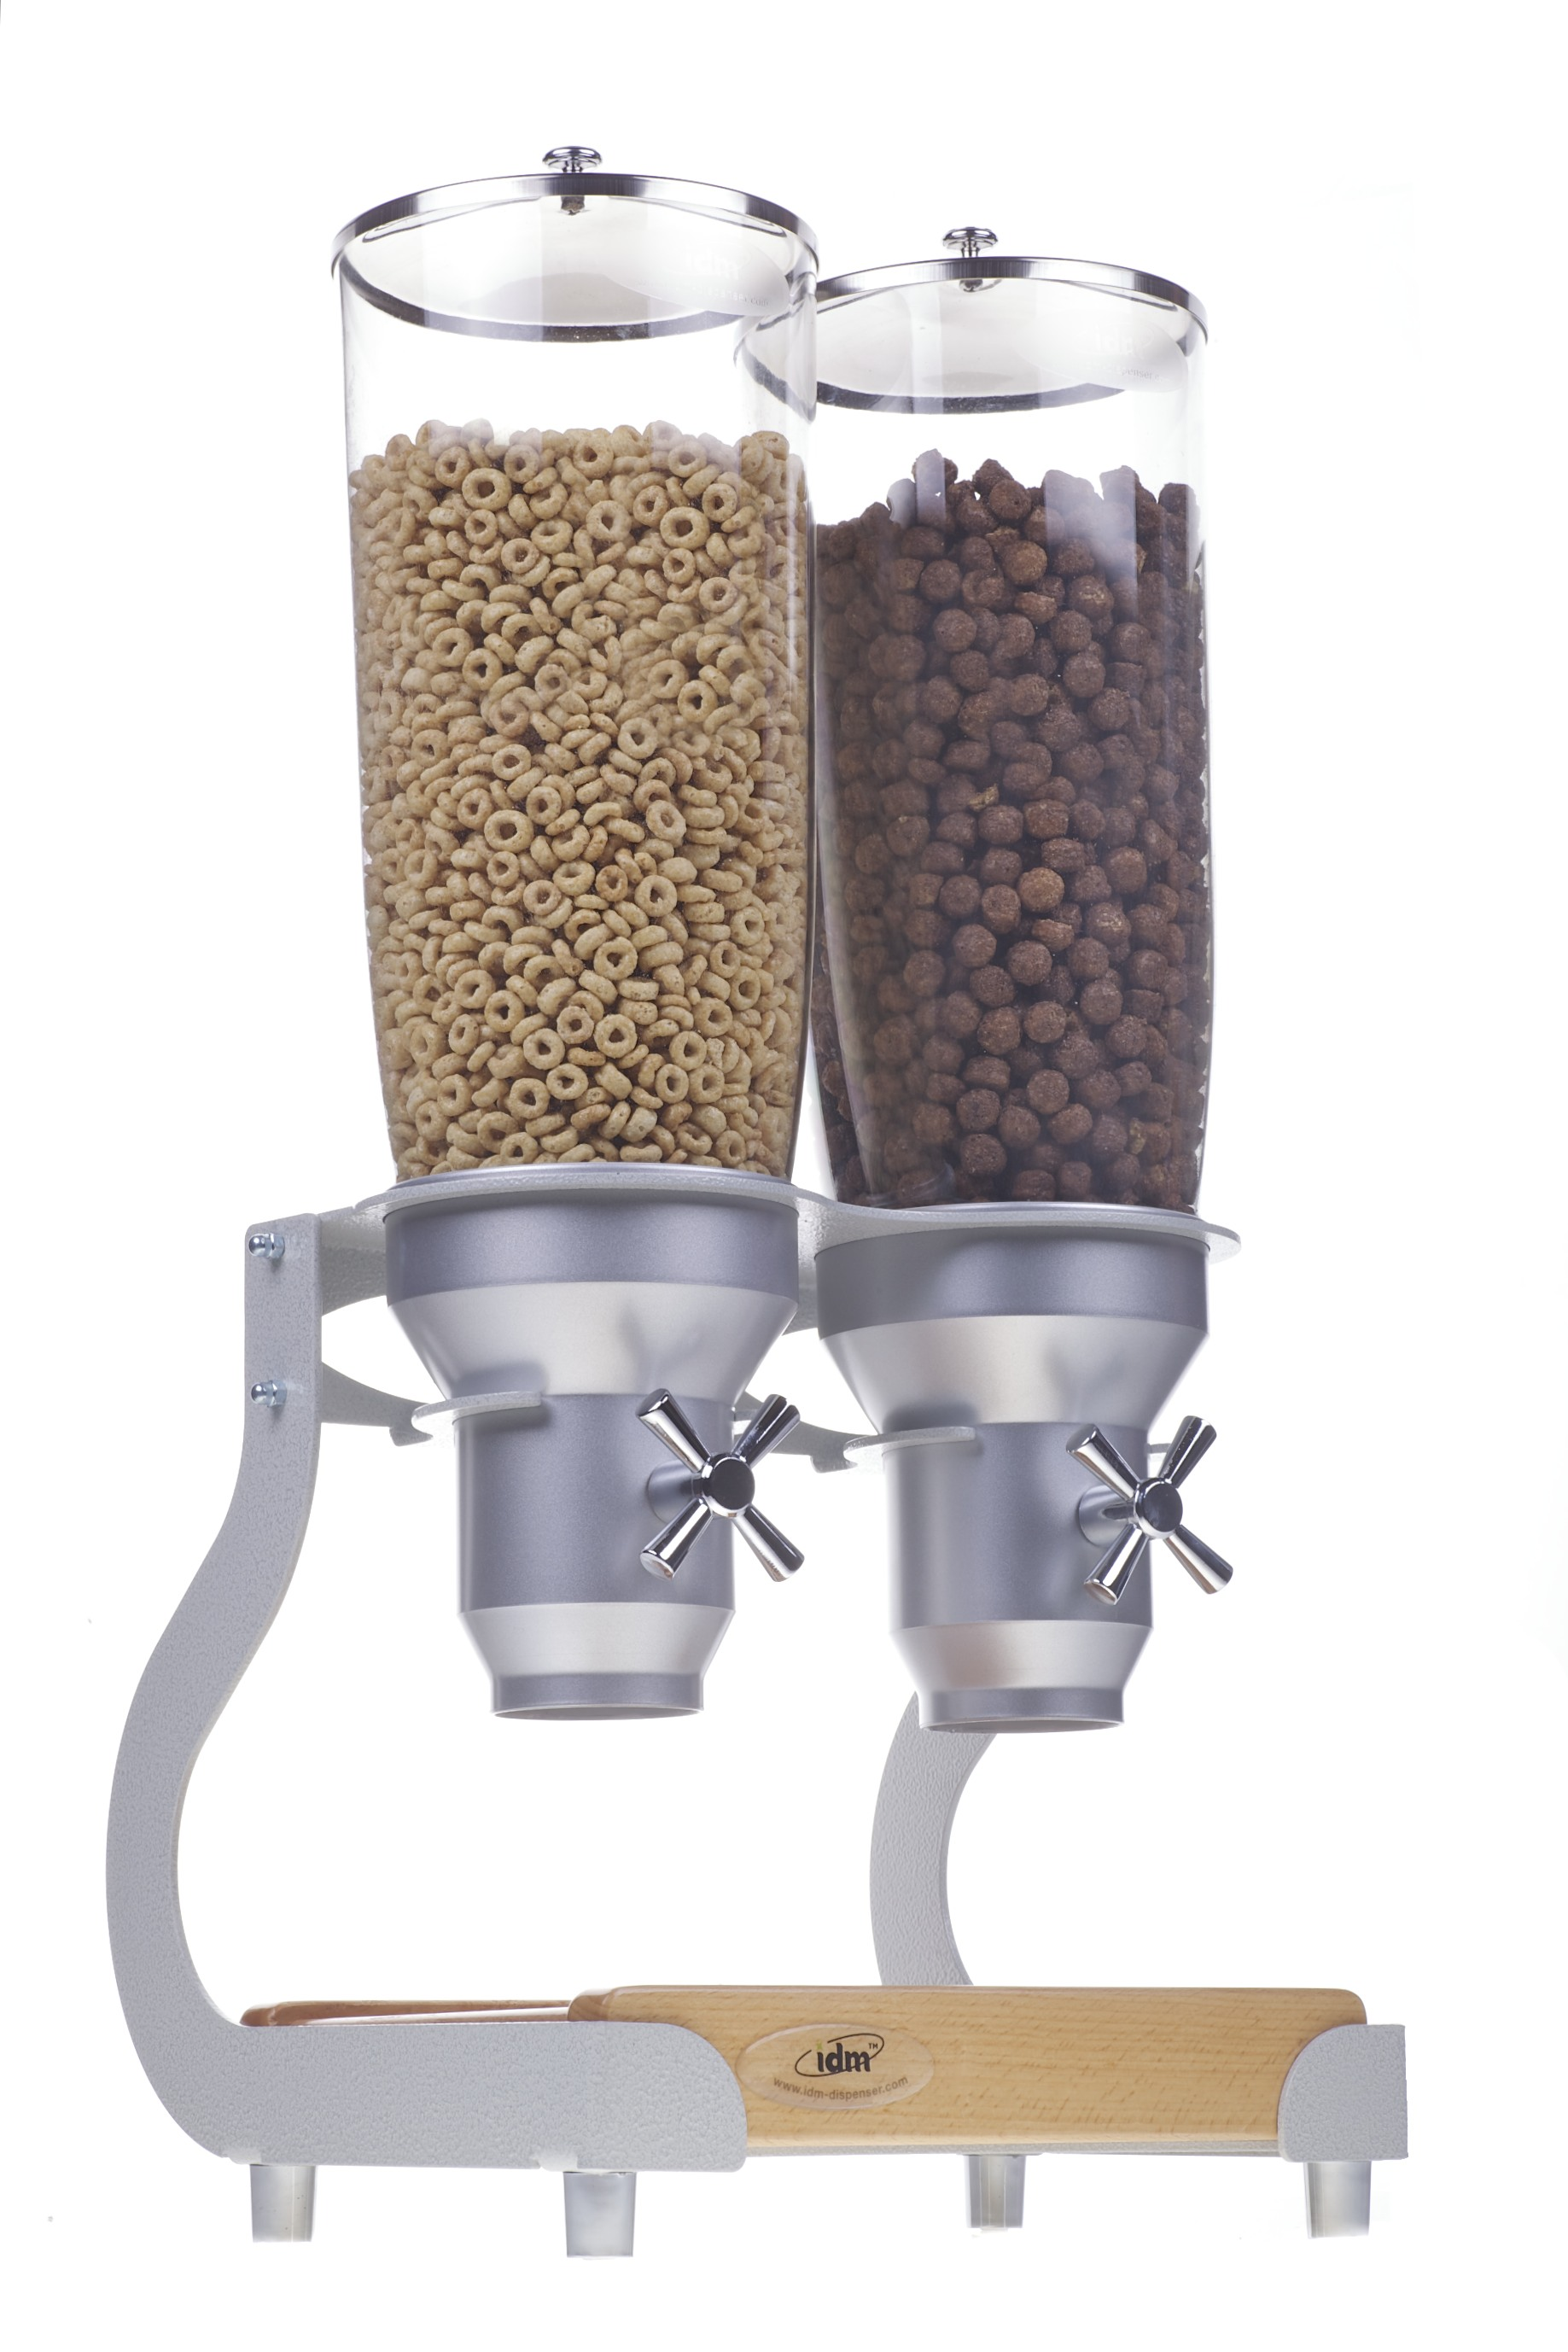 QEC offers a unique range of dry food dispensers for commercial, retail and private use.Utilizing high quality materials and exceptional designs -D20. Australian Distributor.